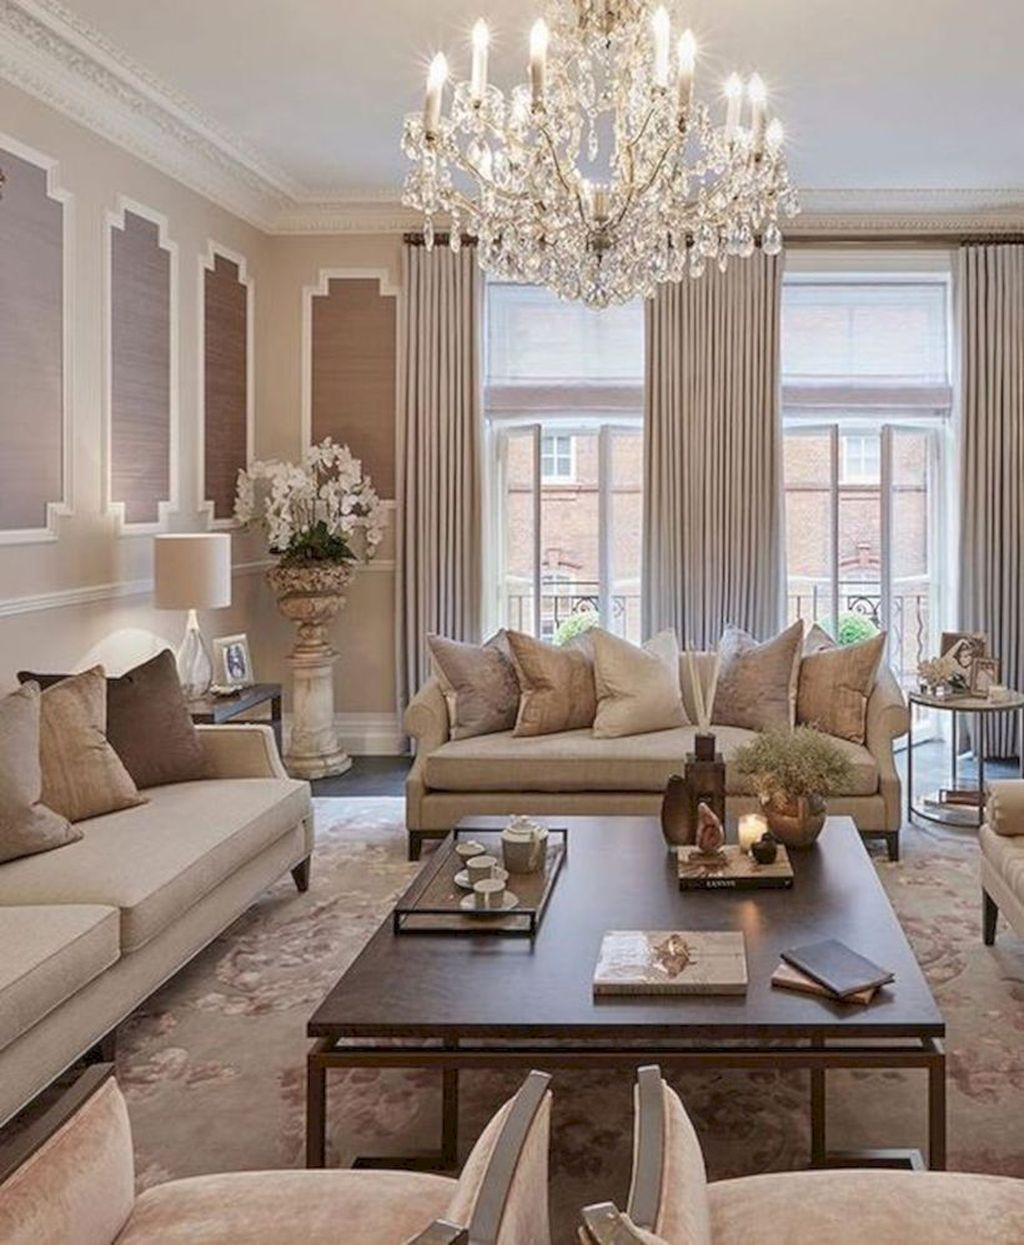 Luxurious And Elegant Living Room Design Ideas39